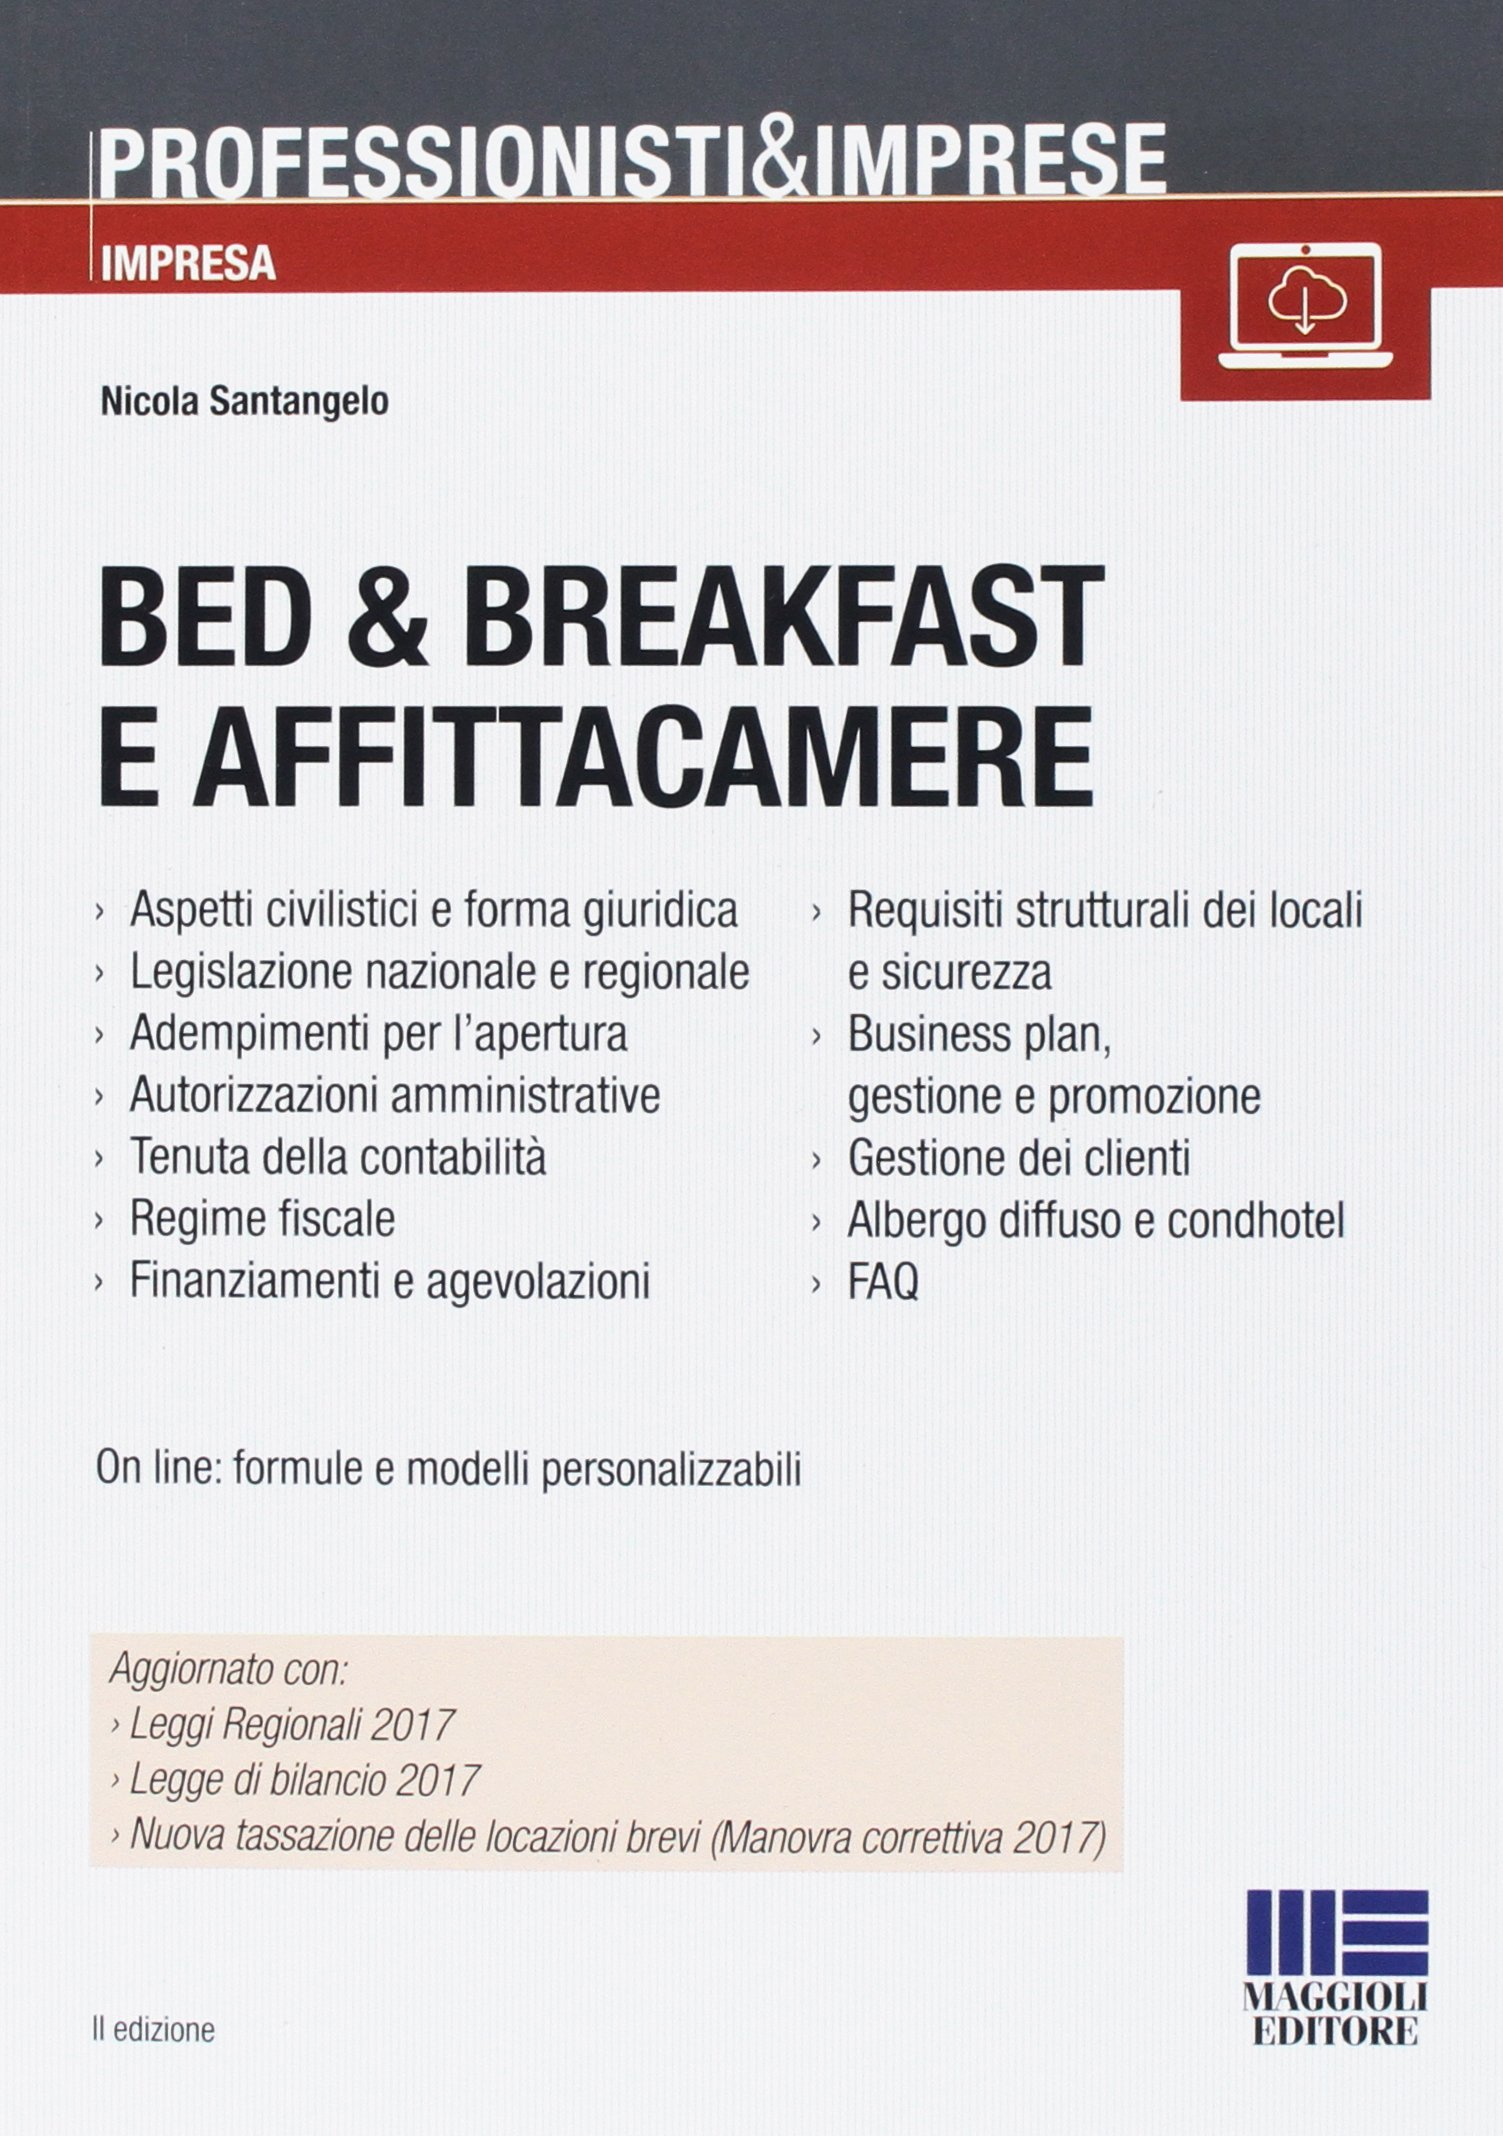 fac simile business plan negozio alimentari